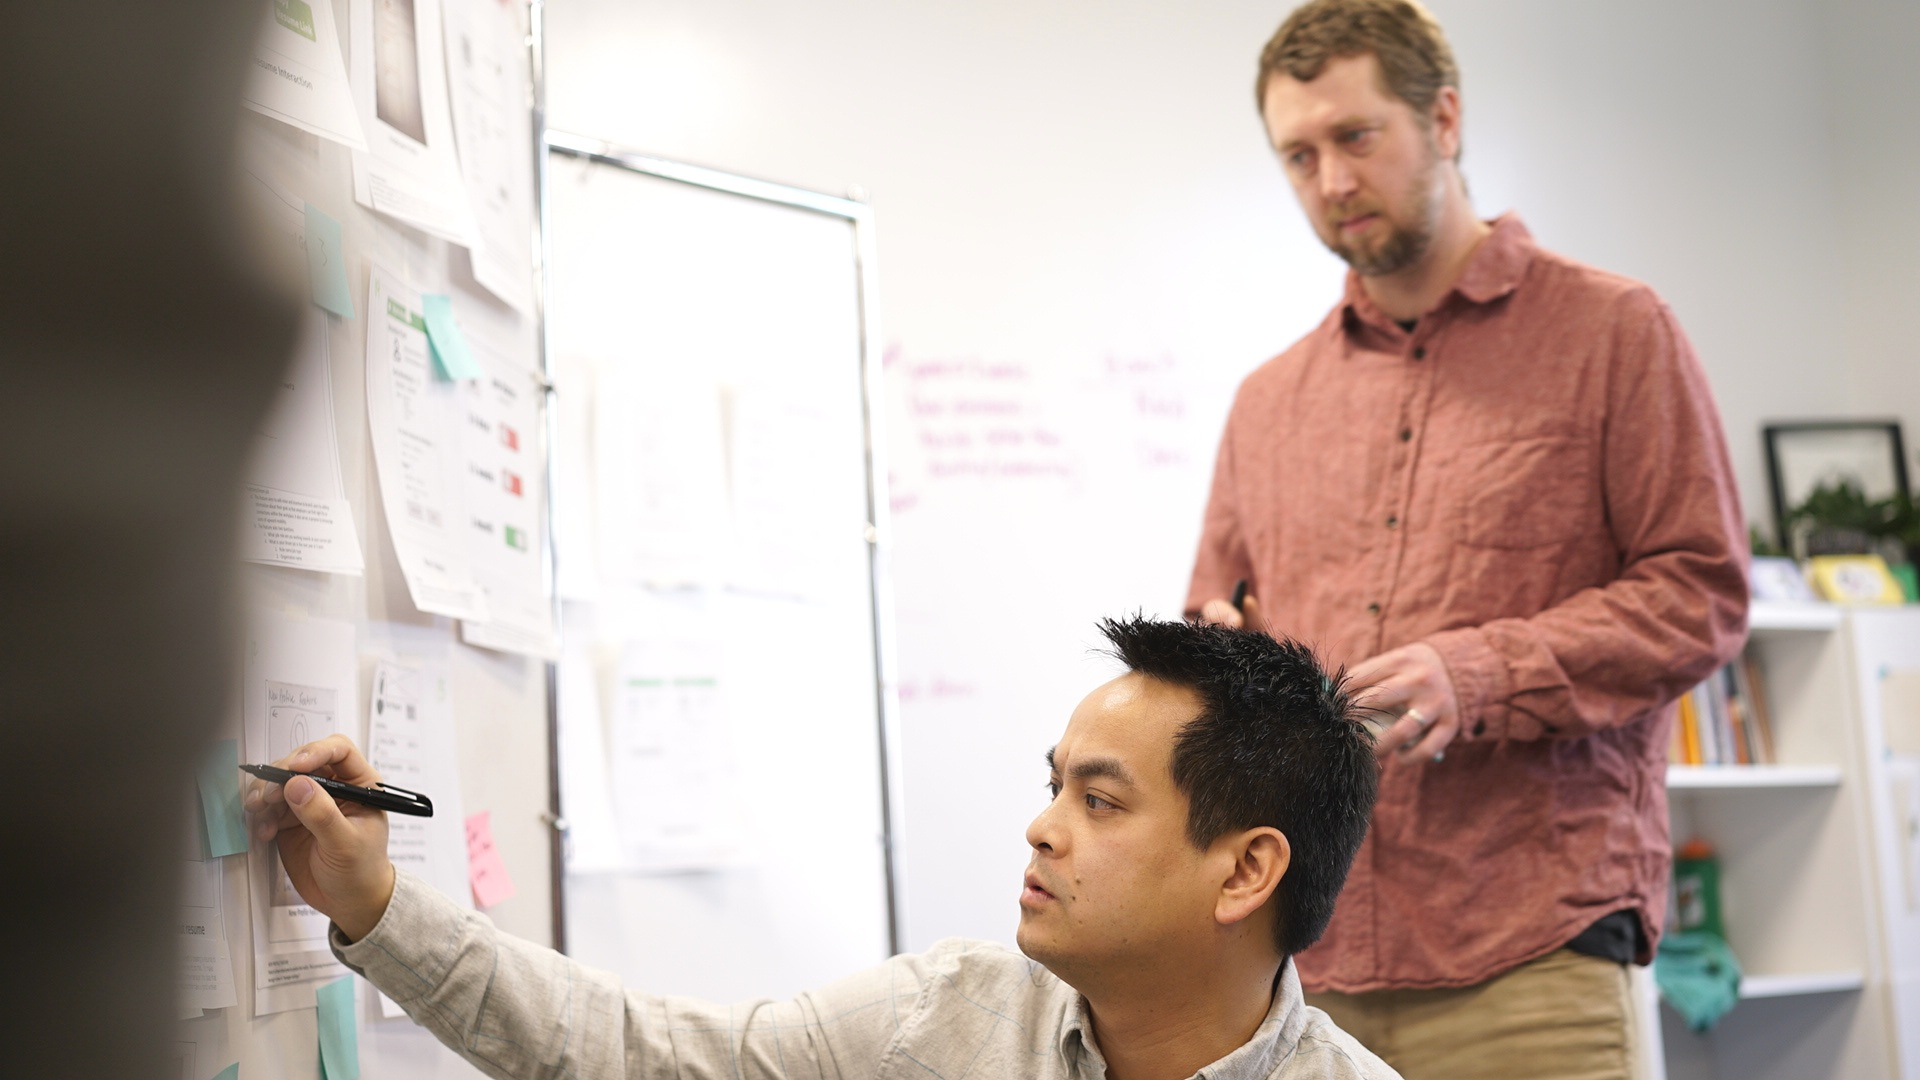 Branch product manager and developer scoring our concepts.